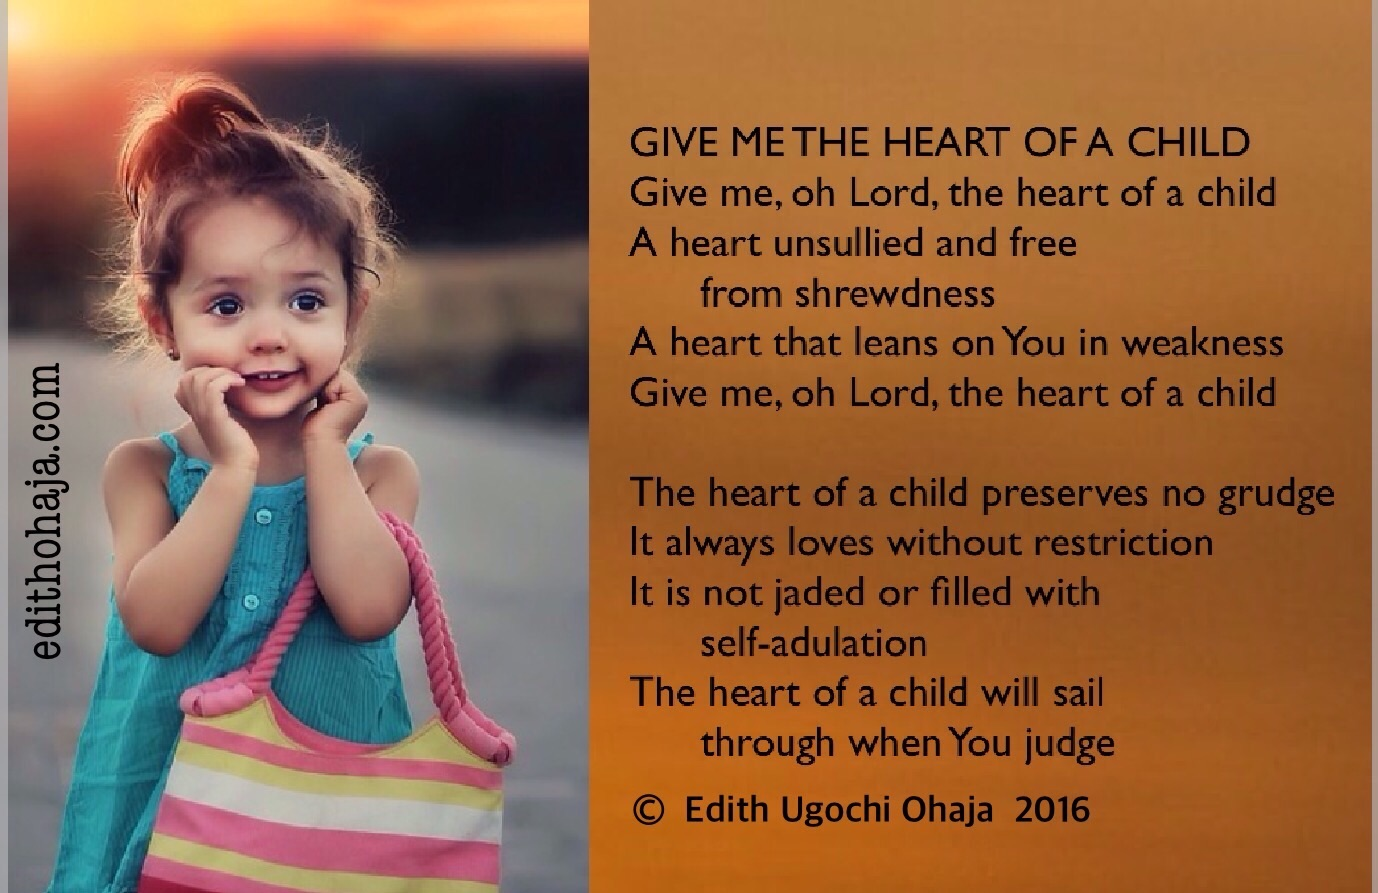 GIVE ME THE HEART OF A CHILD (POEM)